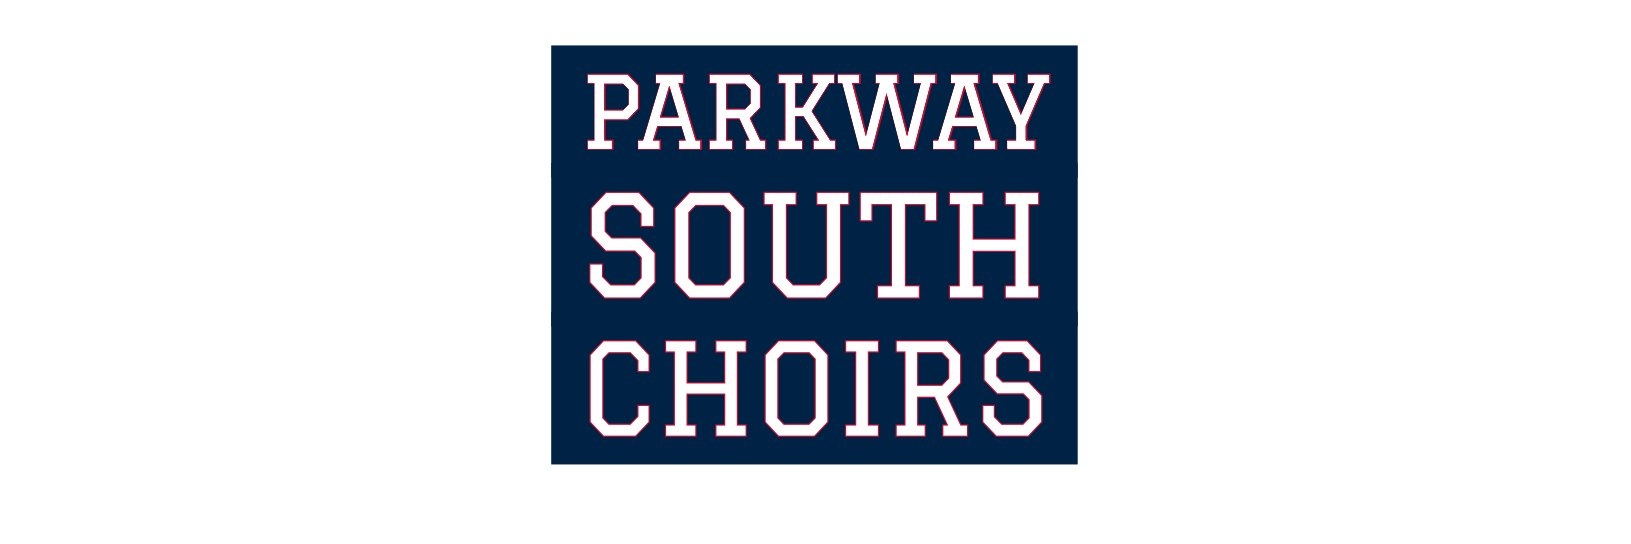 A group from Advanced Chamber Choir performed at Taste of Hanna night! #psouthproud #pschoirs @patriotpride76… https://t.co/xnXQVrdmxT